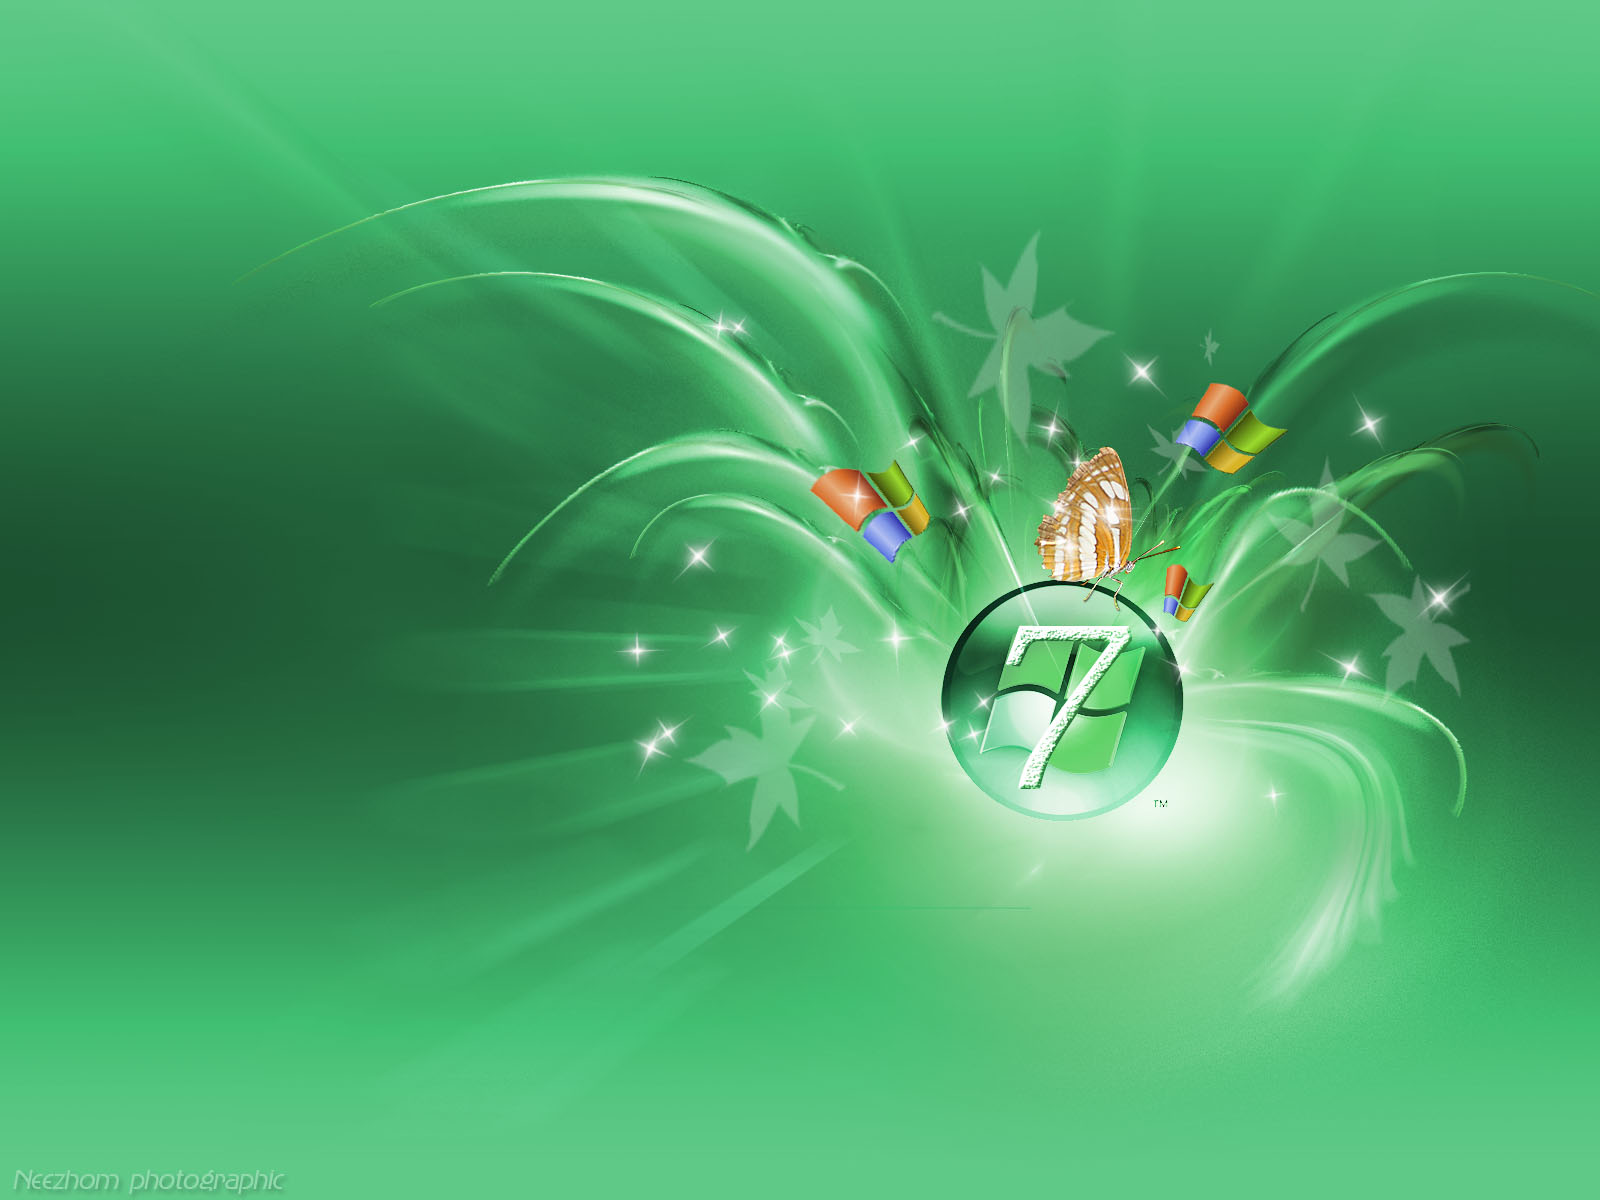 the king of all mikes: get's windows 7 wallpaper for desktop backgrounds